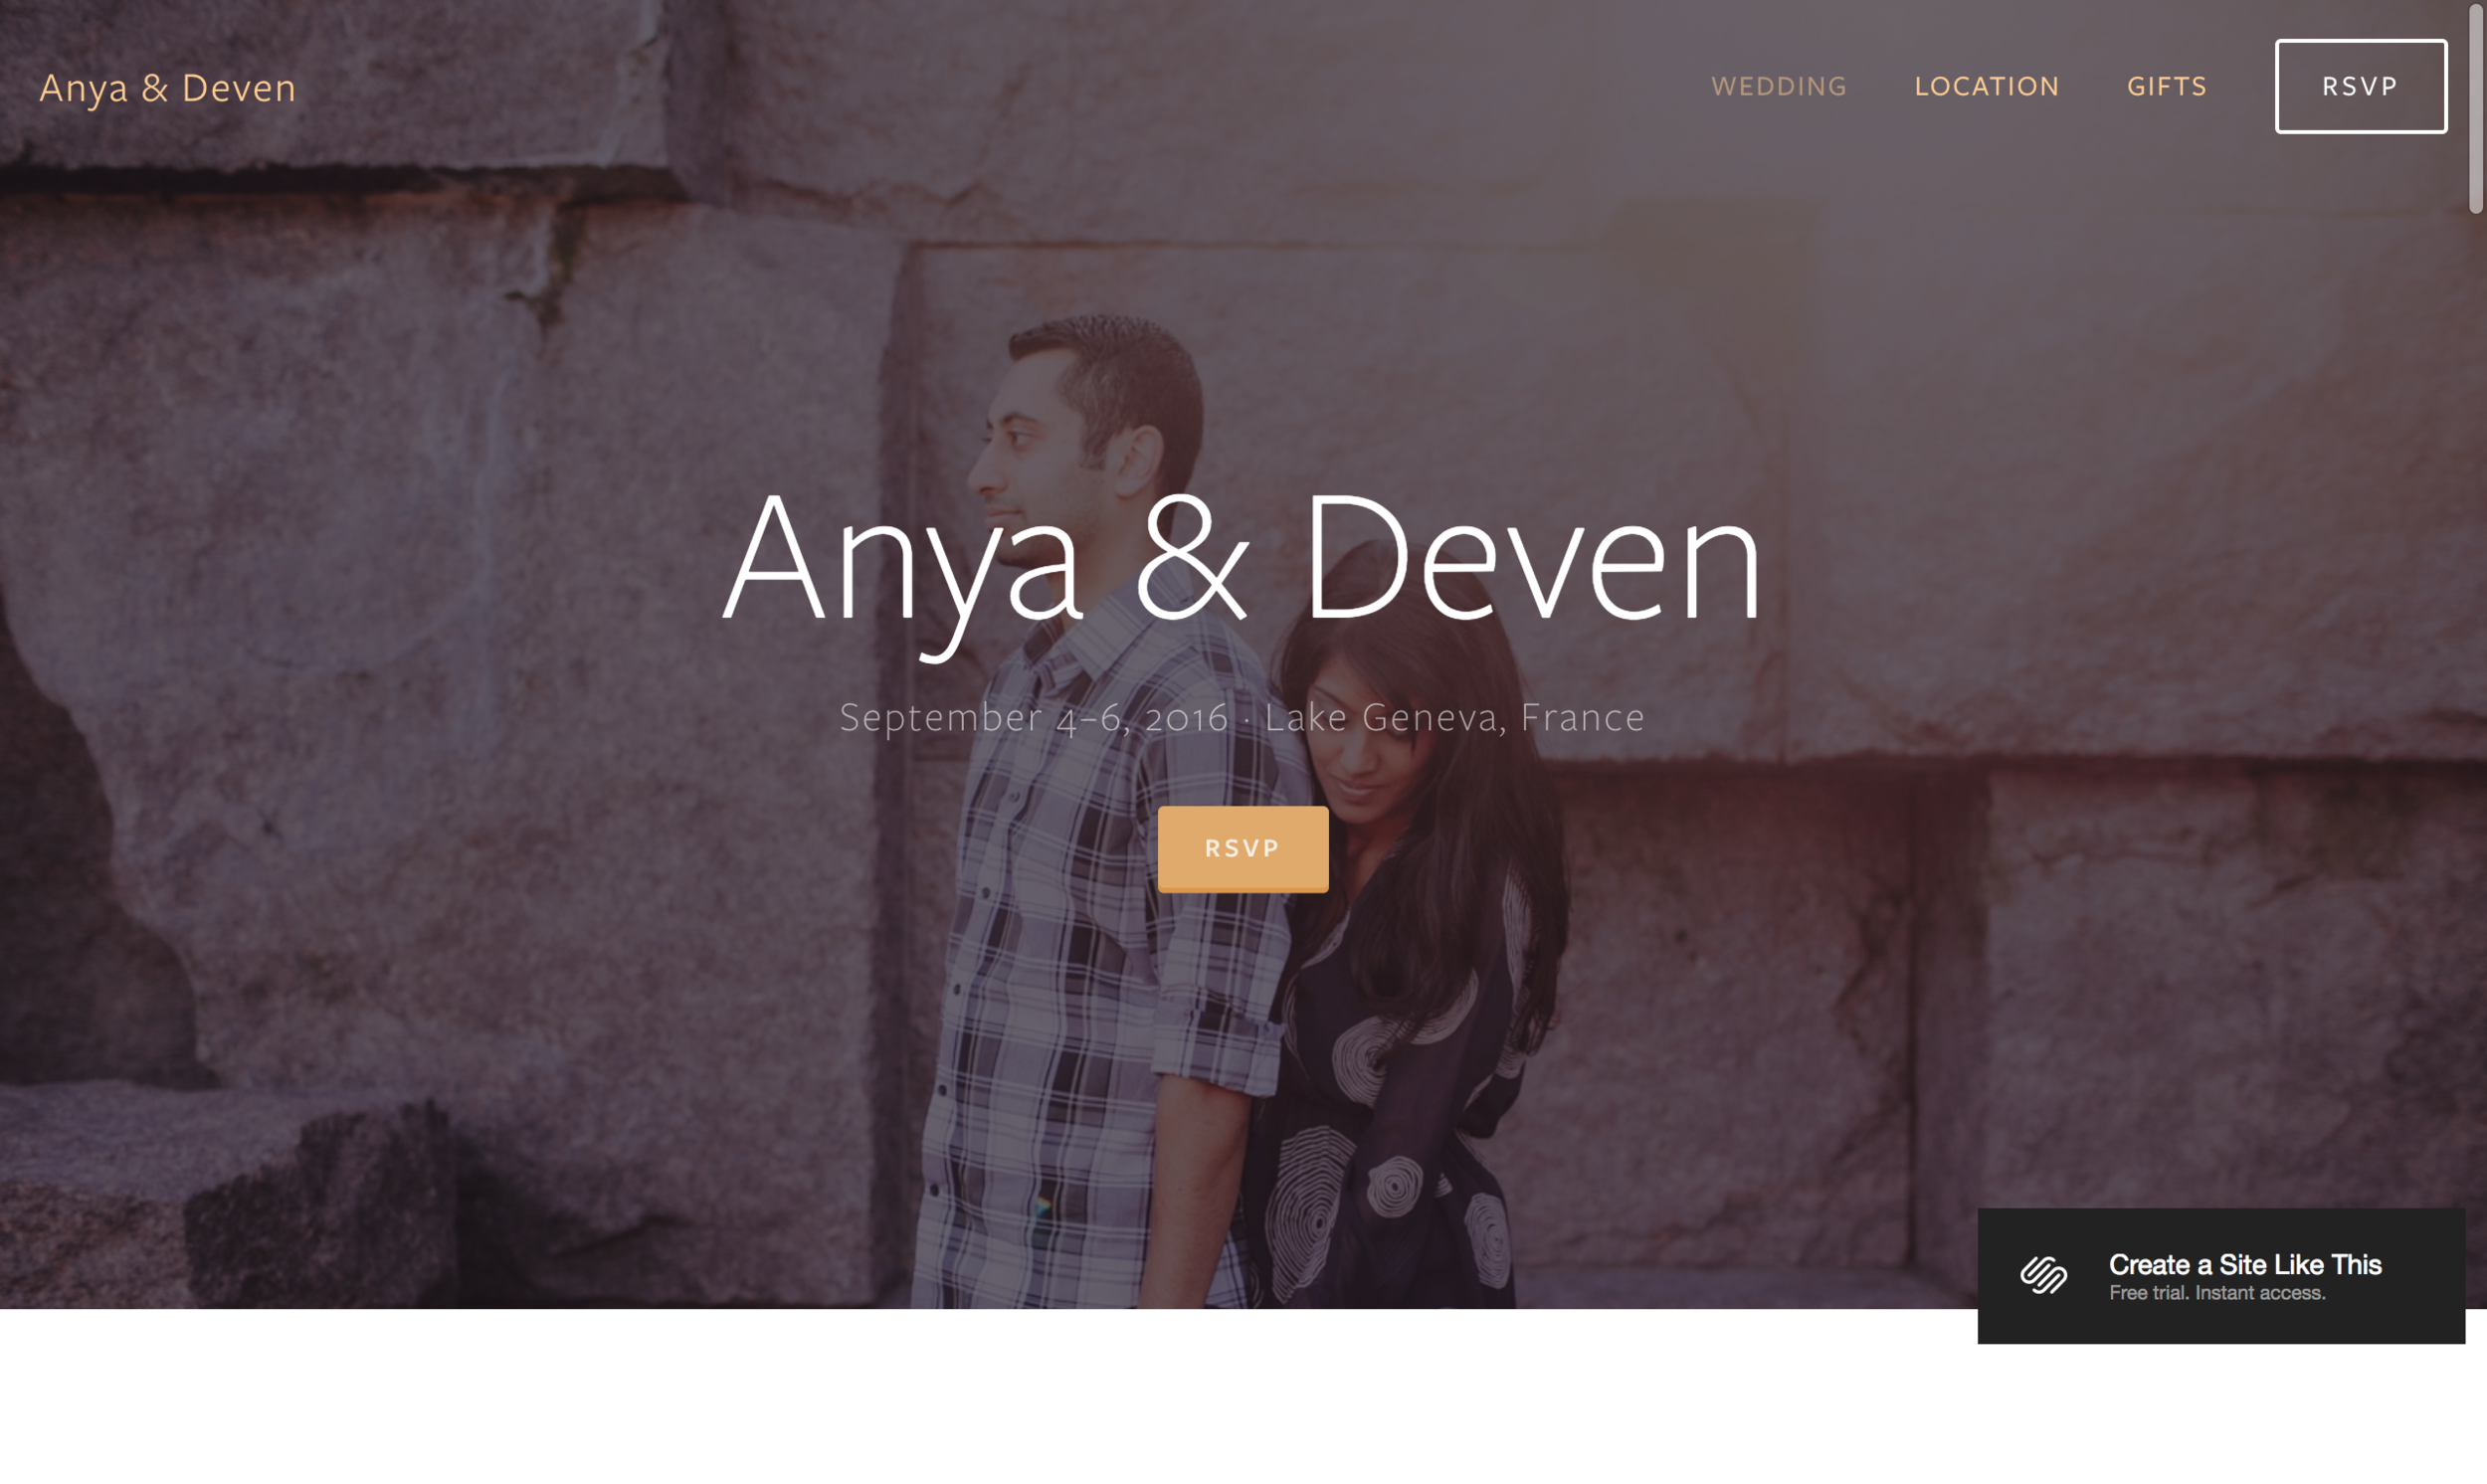 Anya-and-Deven-Wedding-Website-e1516151286280.png